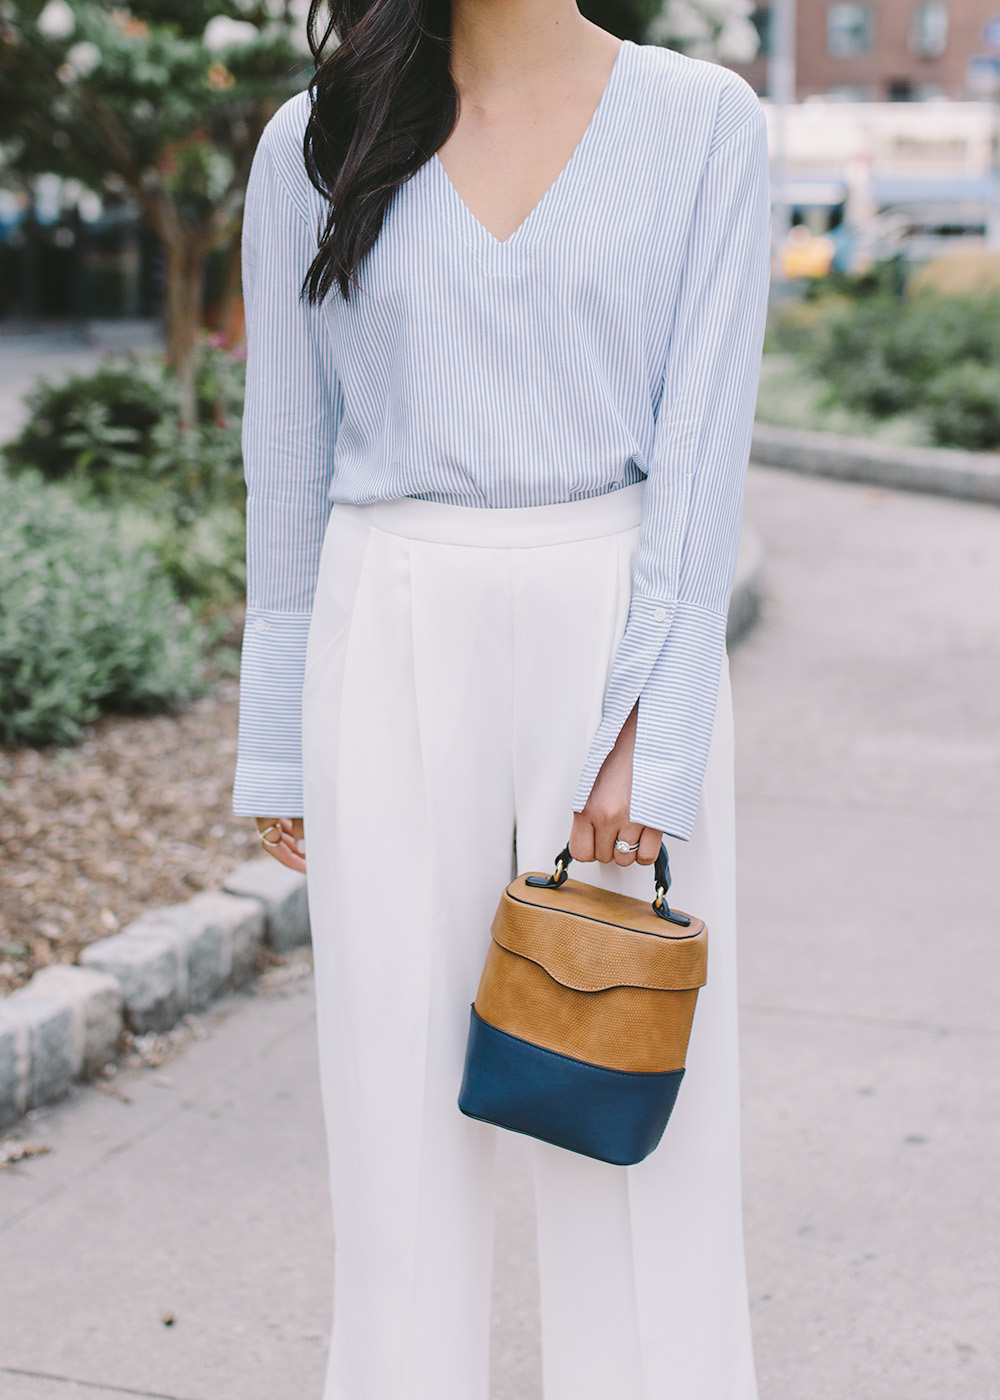 Nordstrom Anniversary 2018 Outfit Ideas